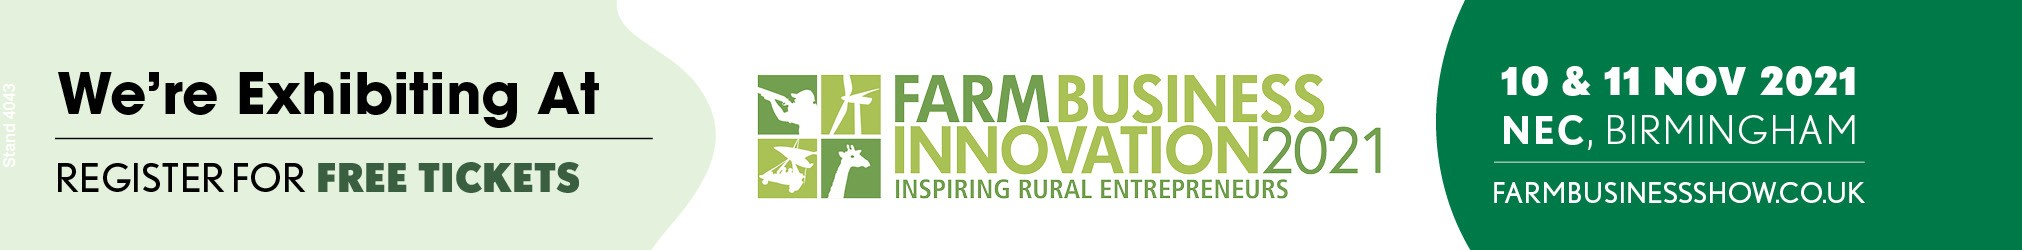 www.farmbusinessshow.co.uk_banners_4365_60002_banner_728x901(1)